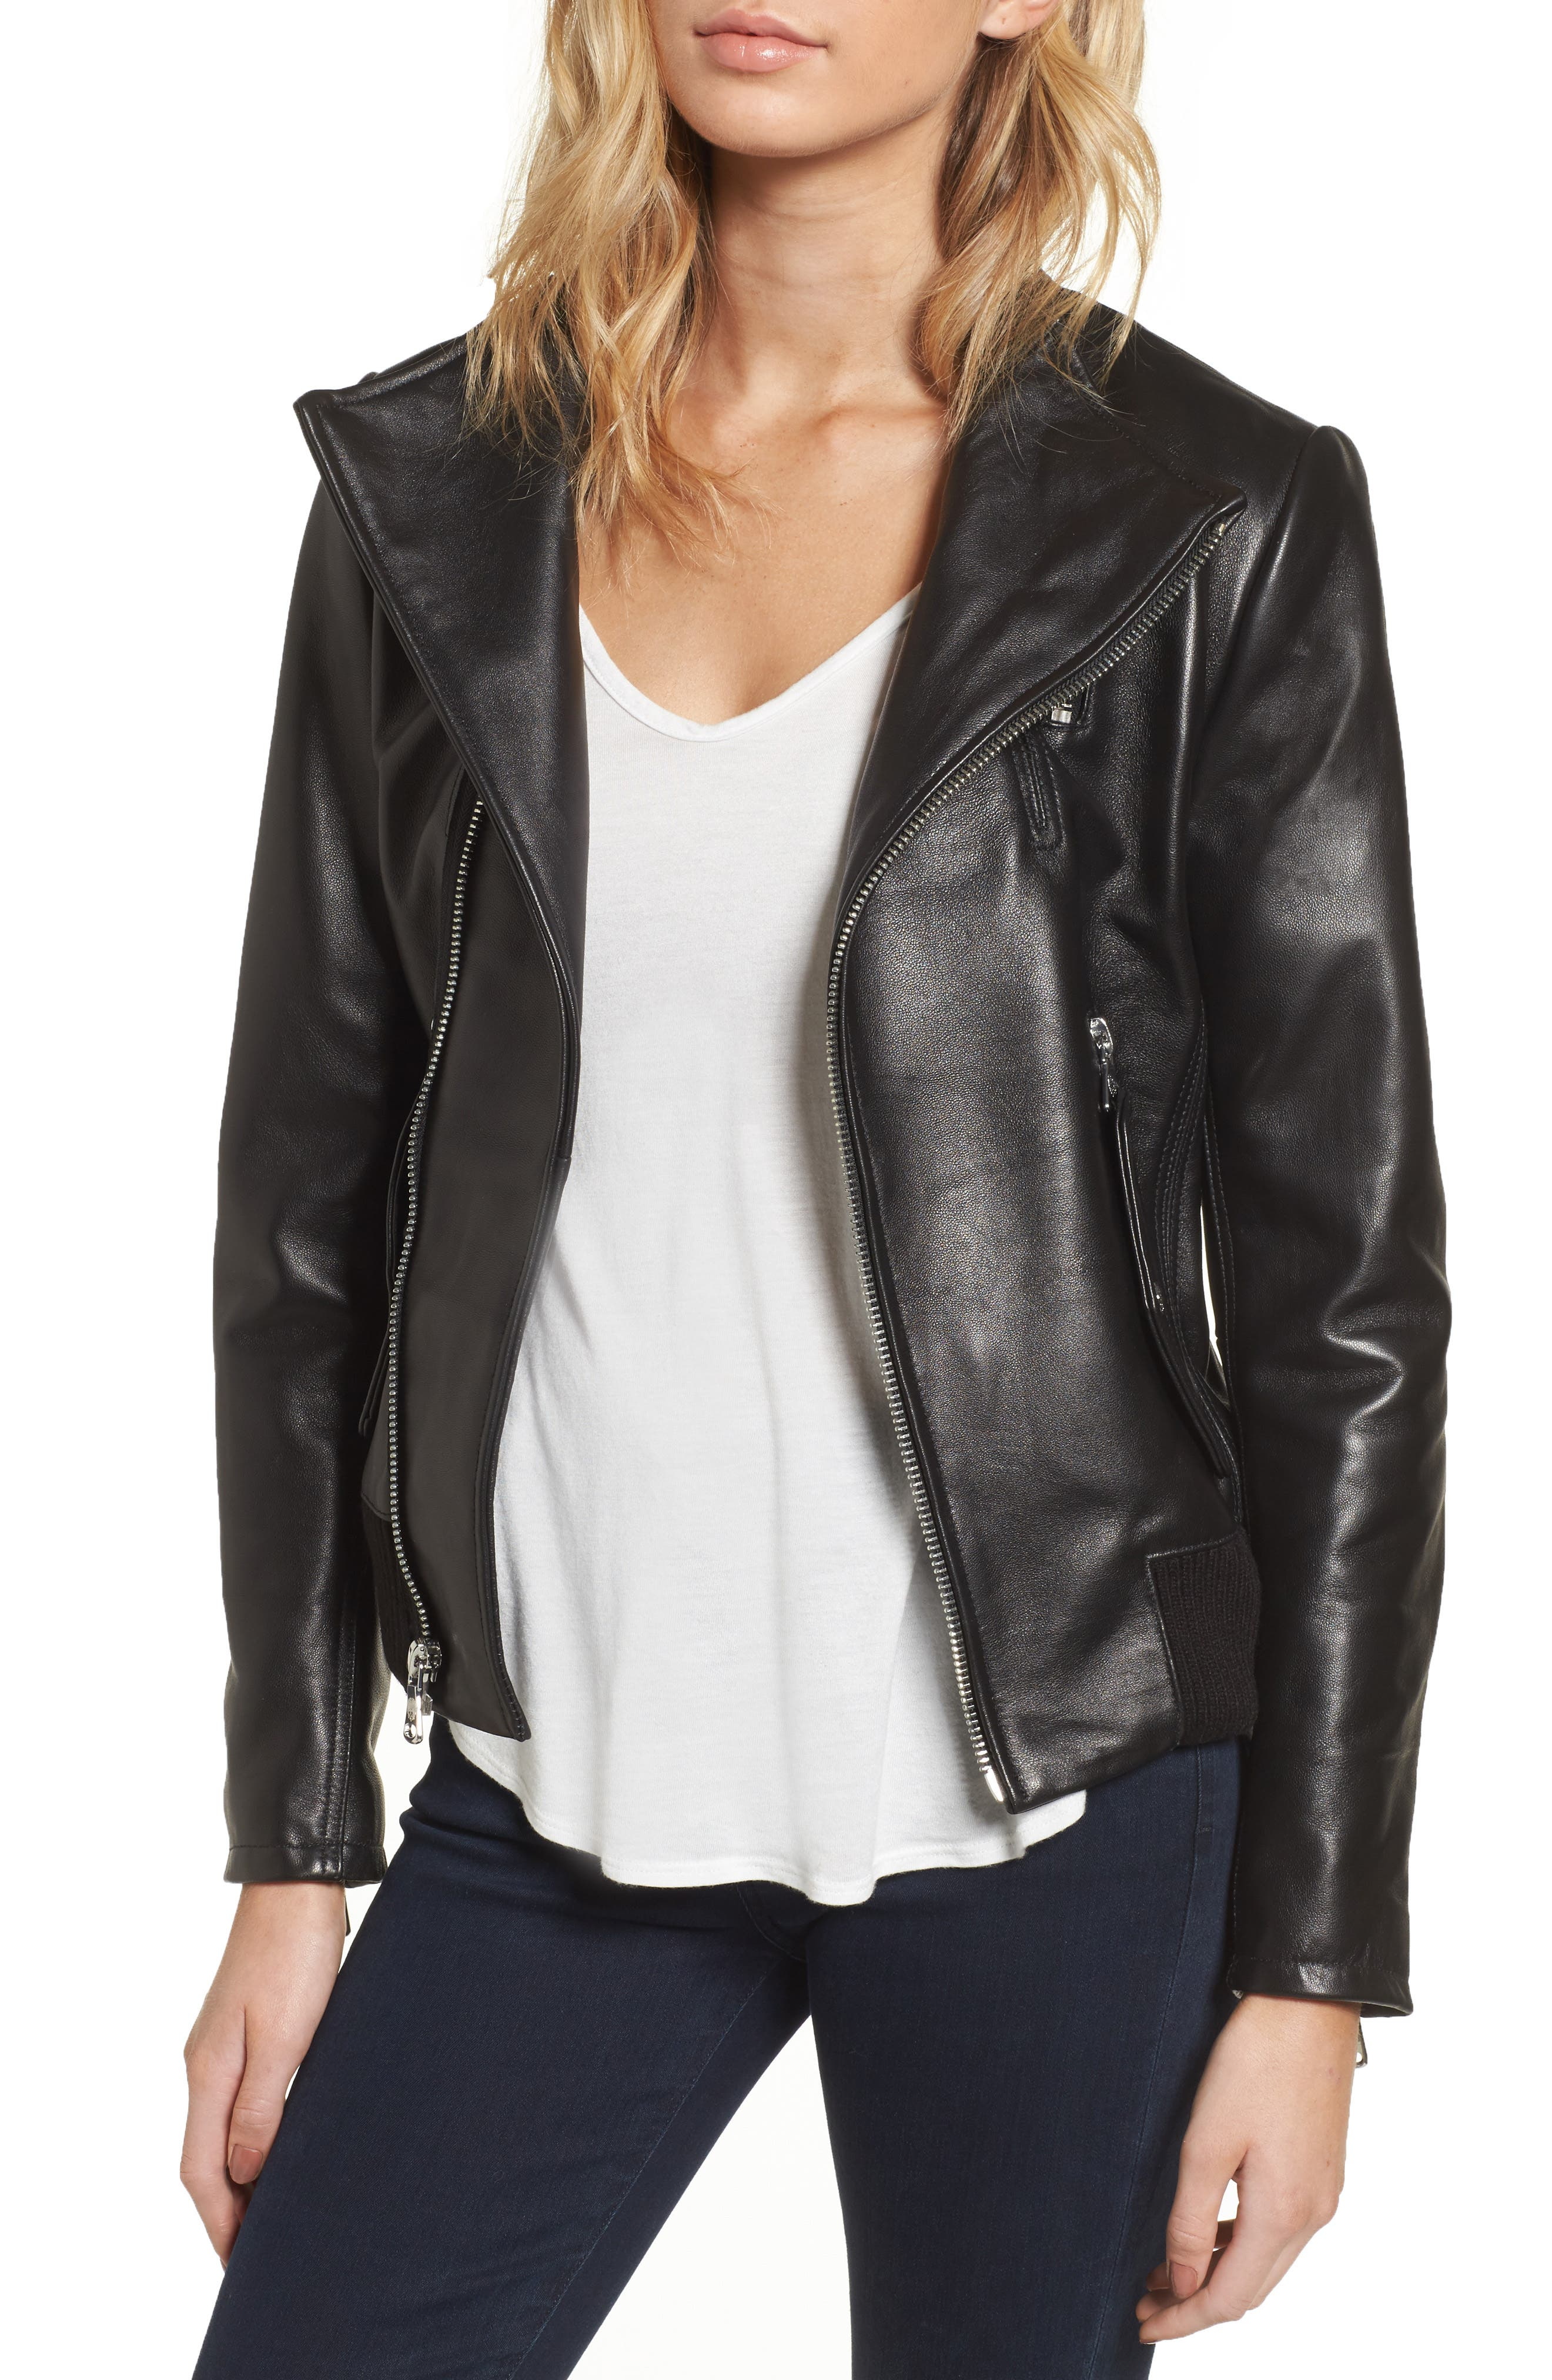 Vince Camuto Leather Bomber Jacket